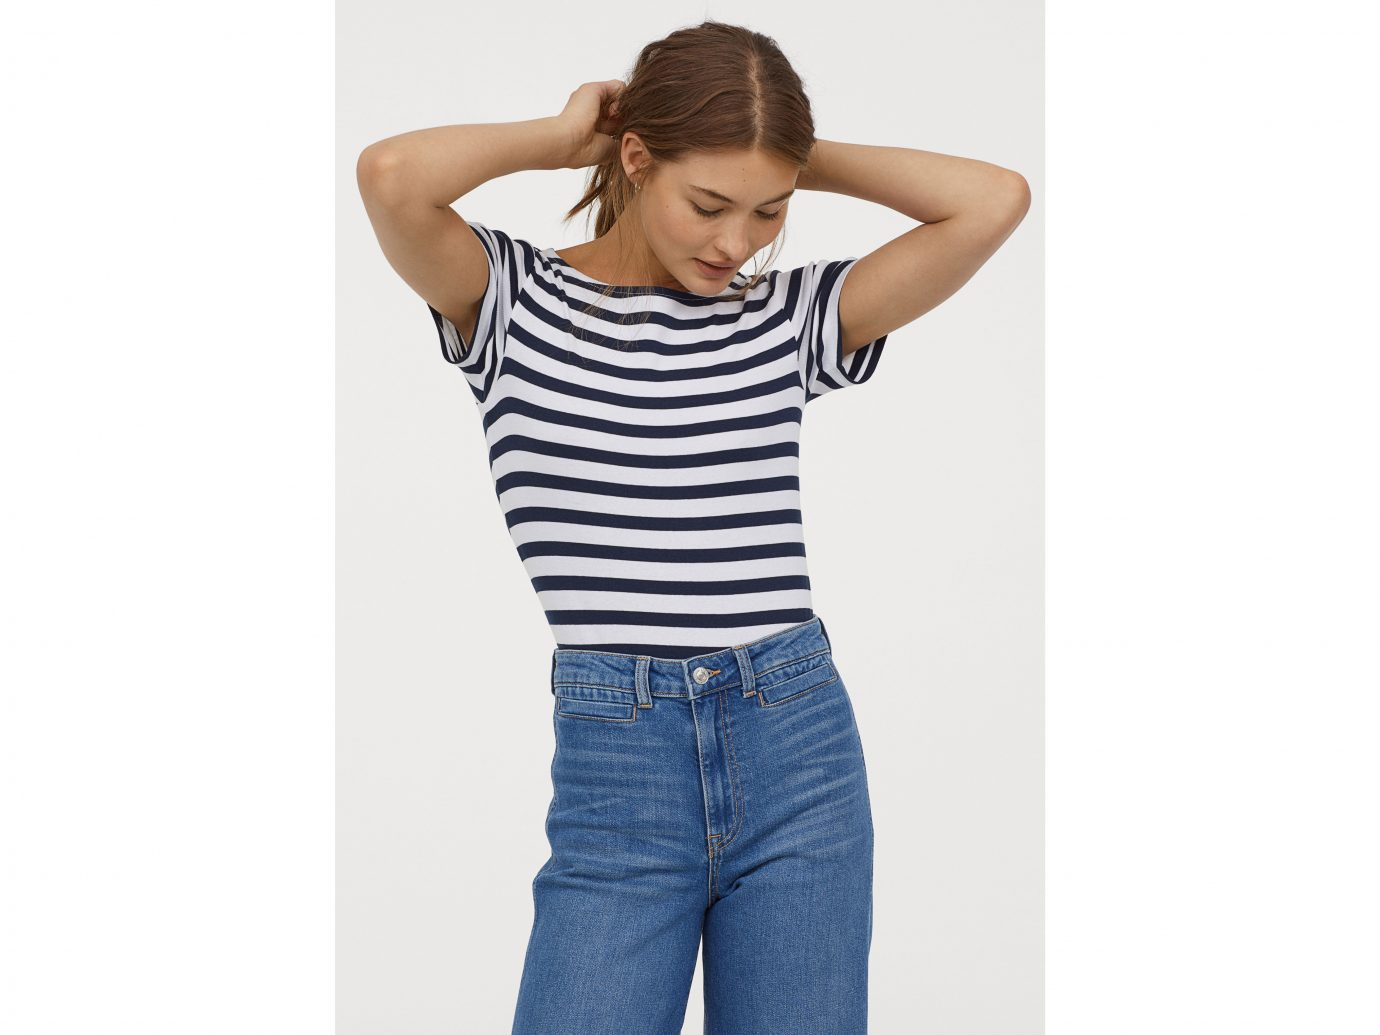 Best boat-neck tee: H&M Boat-Neck T-Shirt